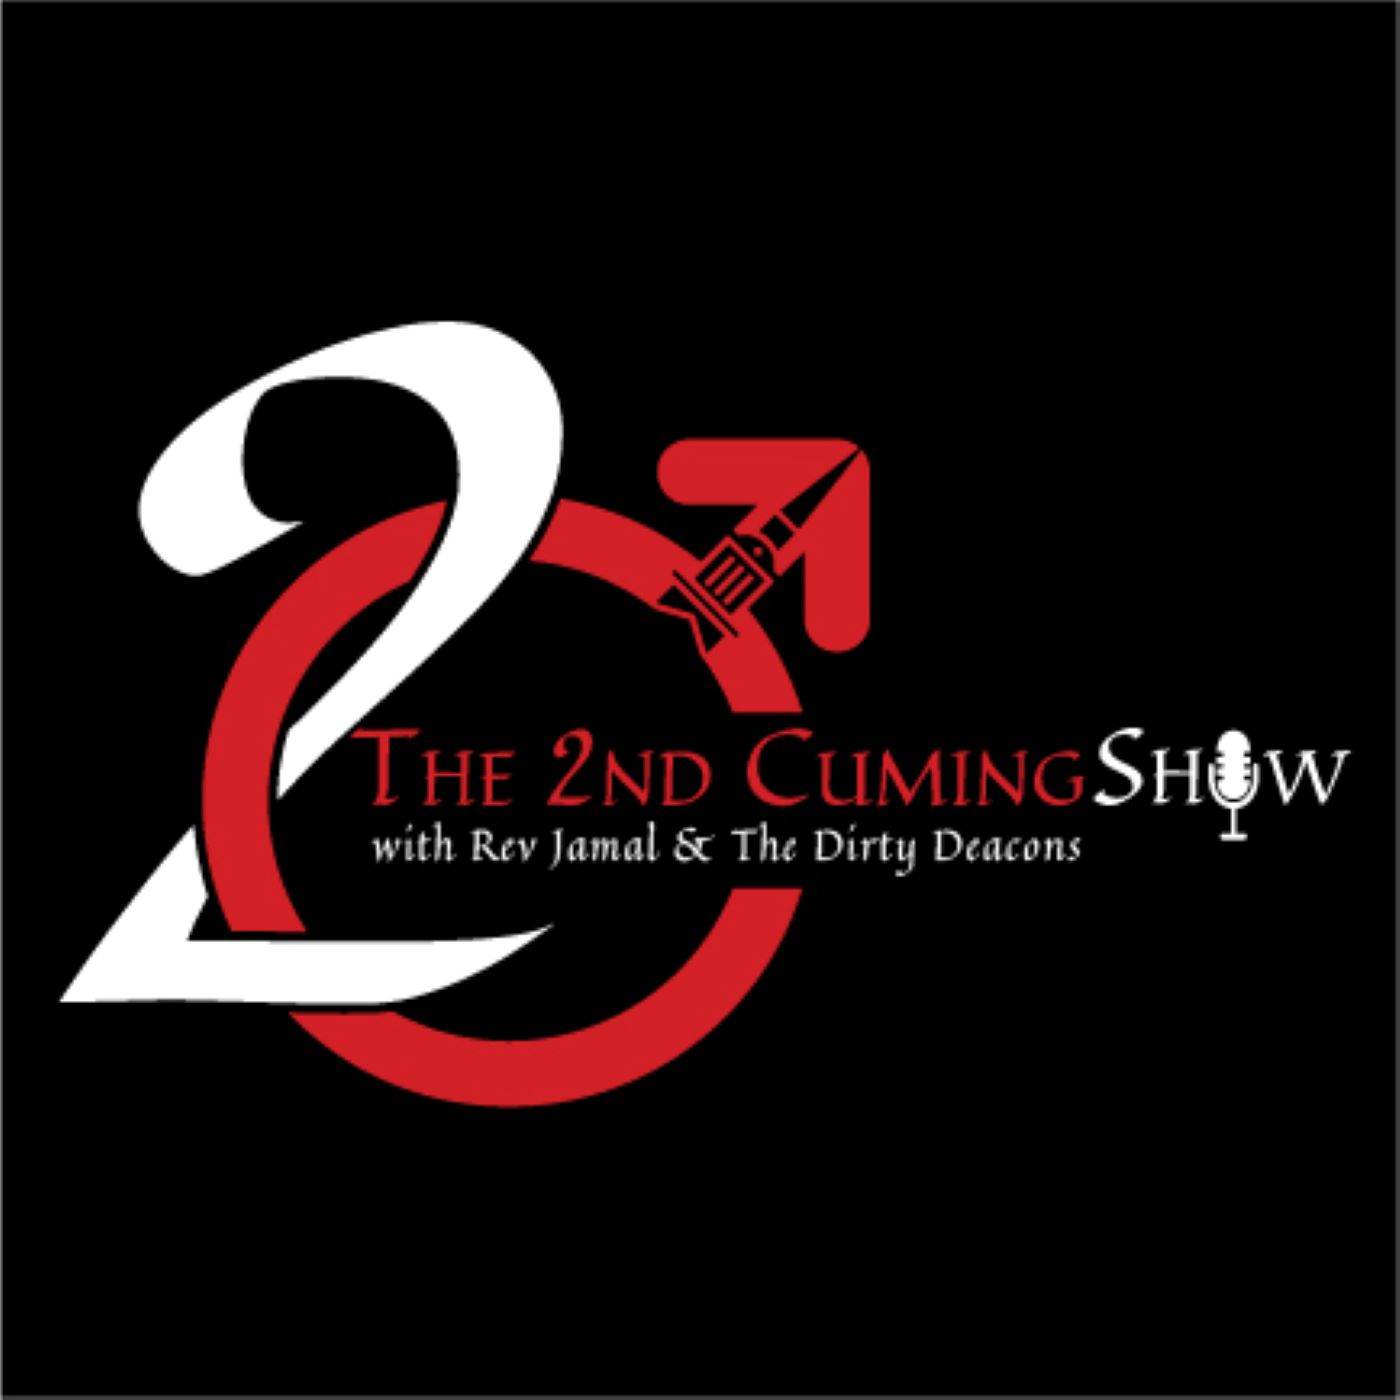 The 2nd Cuming Show